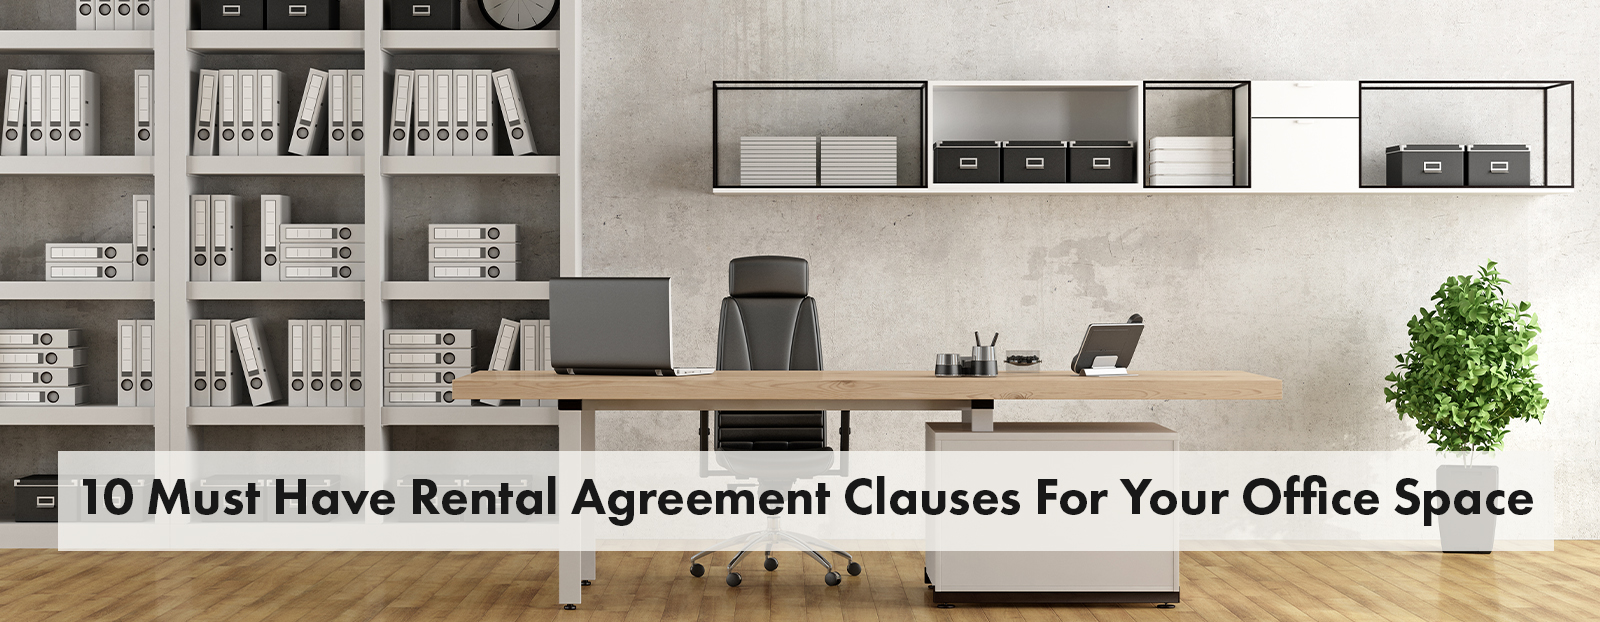 10 Must Have Rental Agreement Clauses For Your Office Space